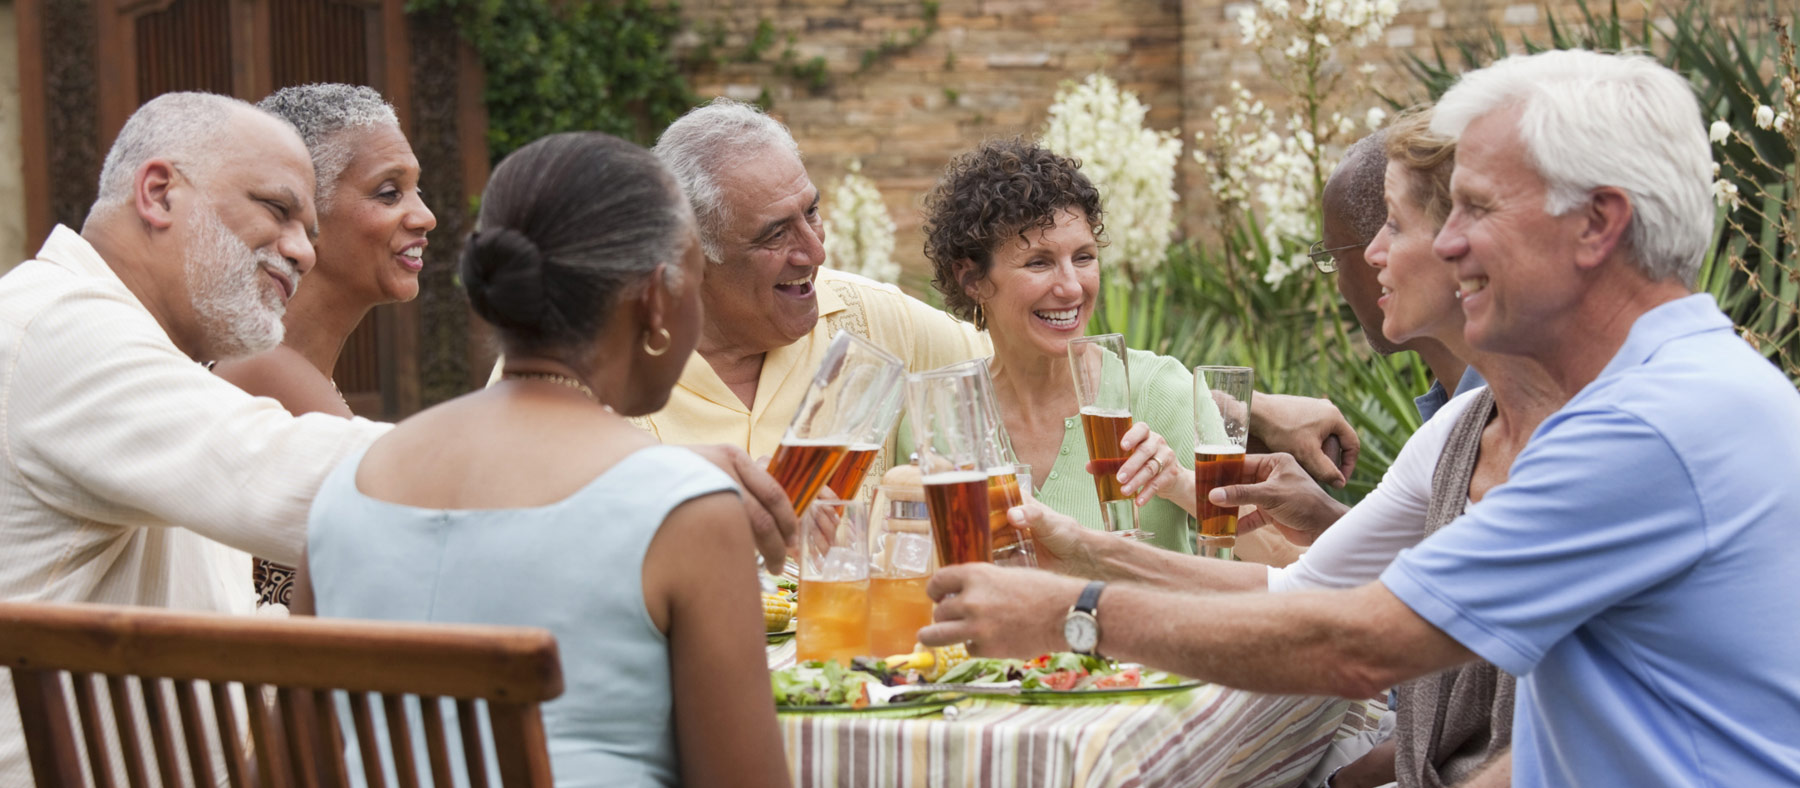 Group of happy senior friends seated around outdoor table toasting drinks